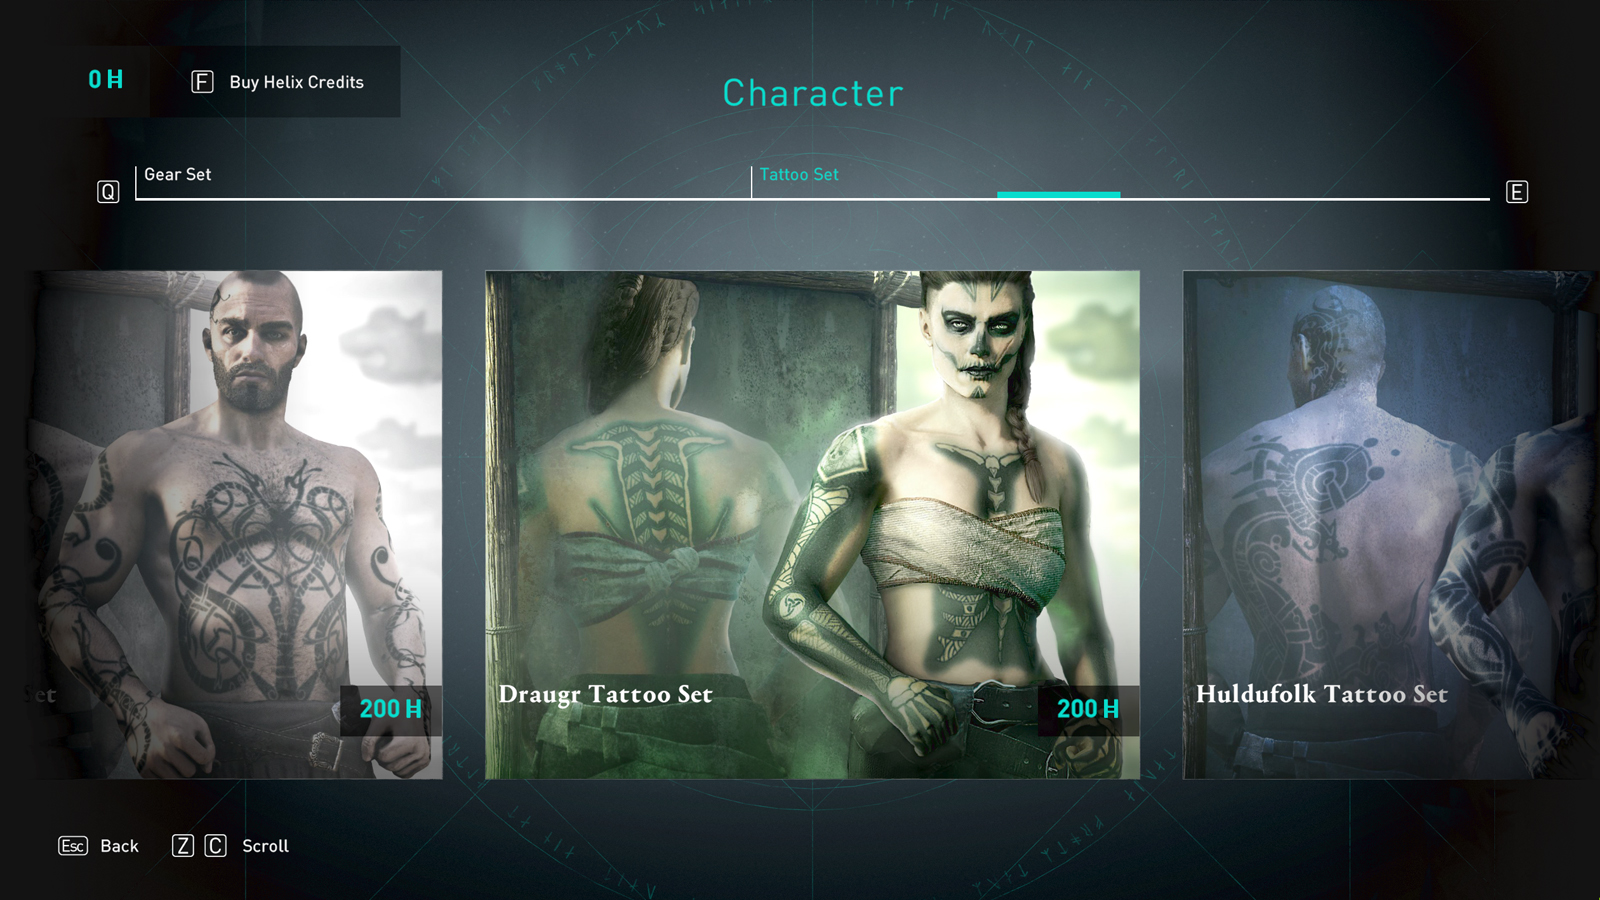 Store image showing the Draugr Tattoo set